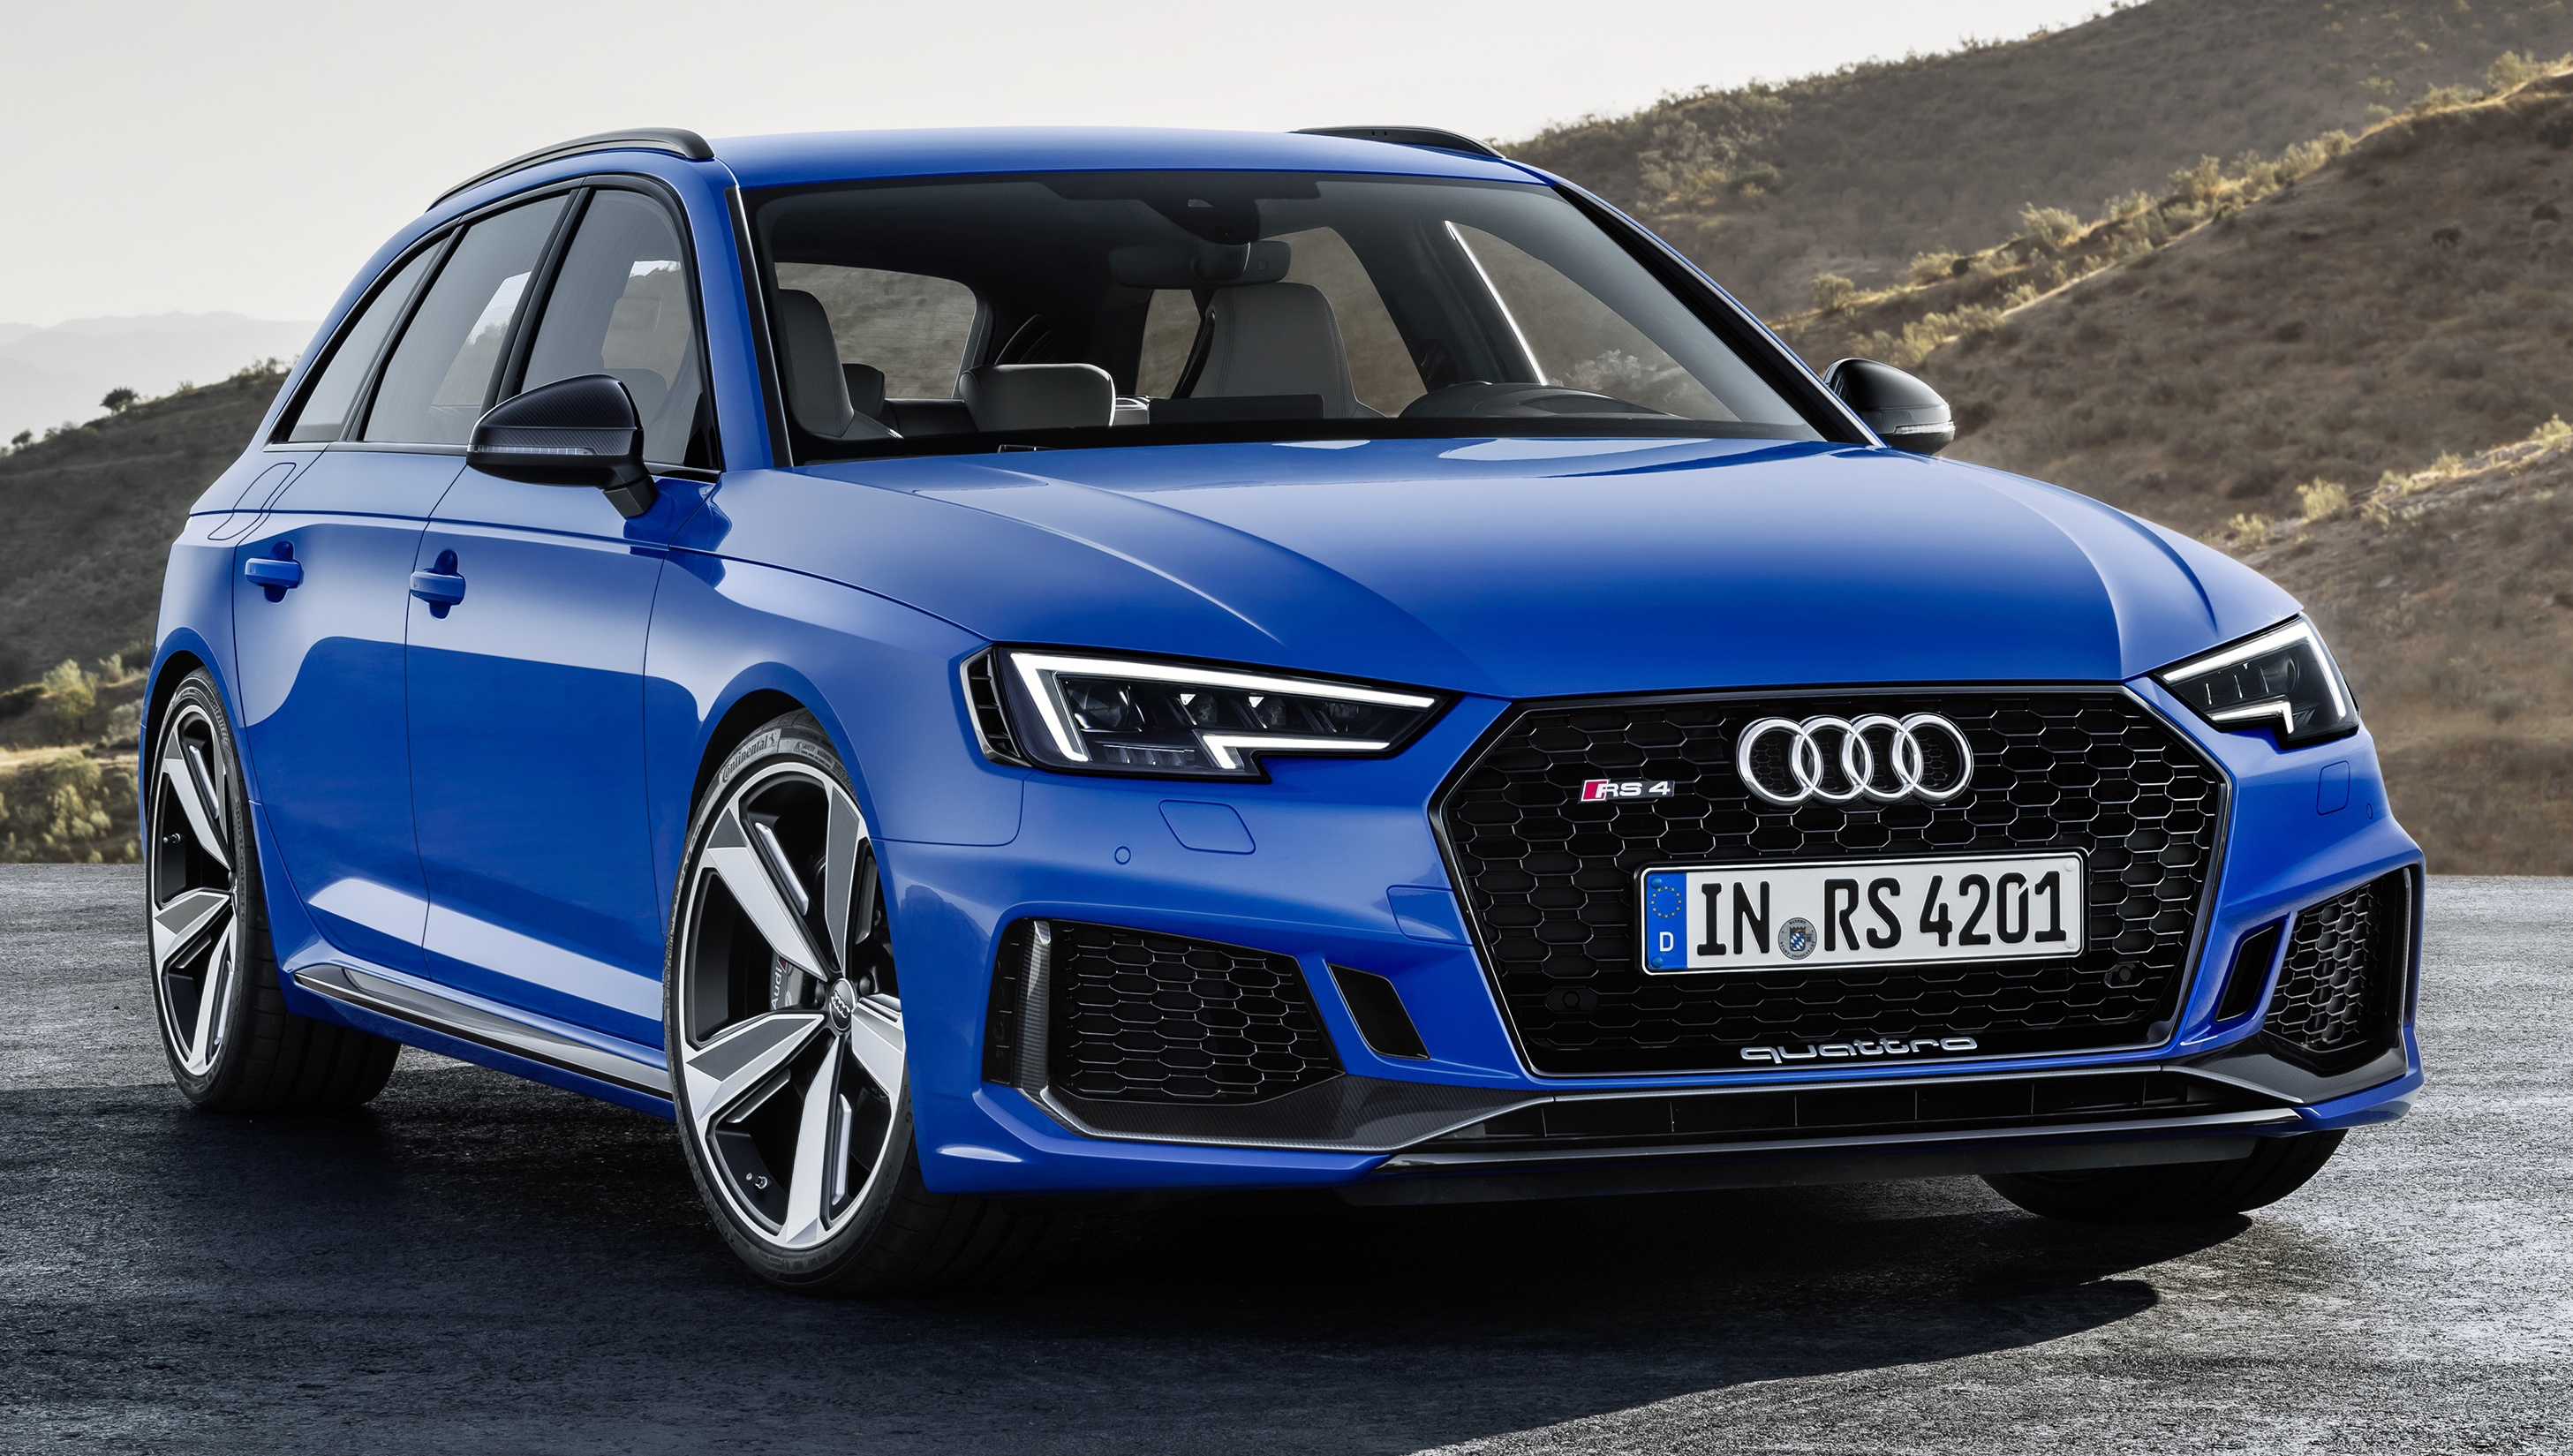 2018 Audi Rs4 Avant Revealed With 450 Hp 2 9 Litre V6